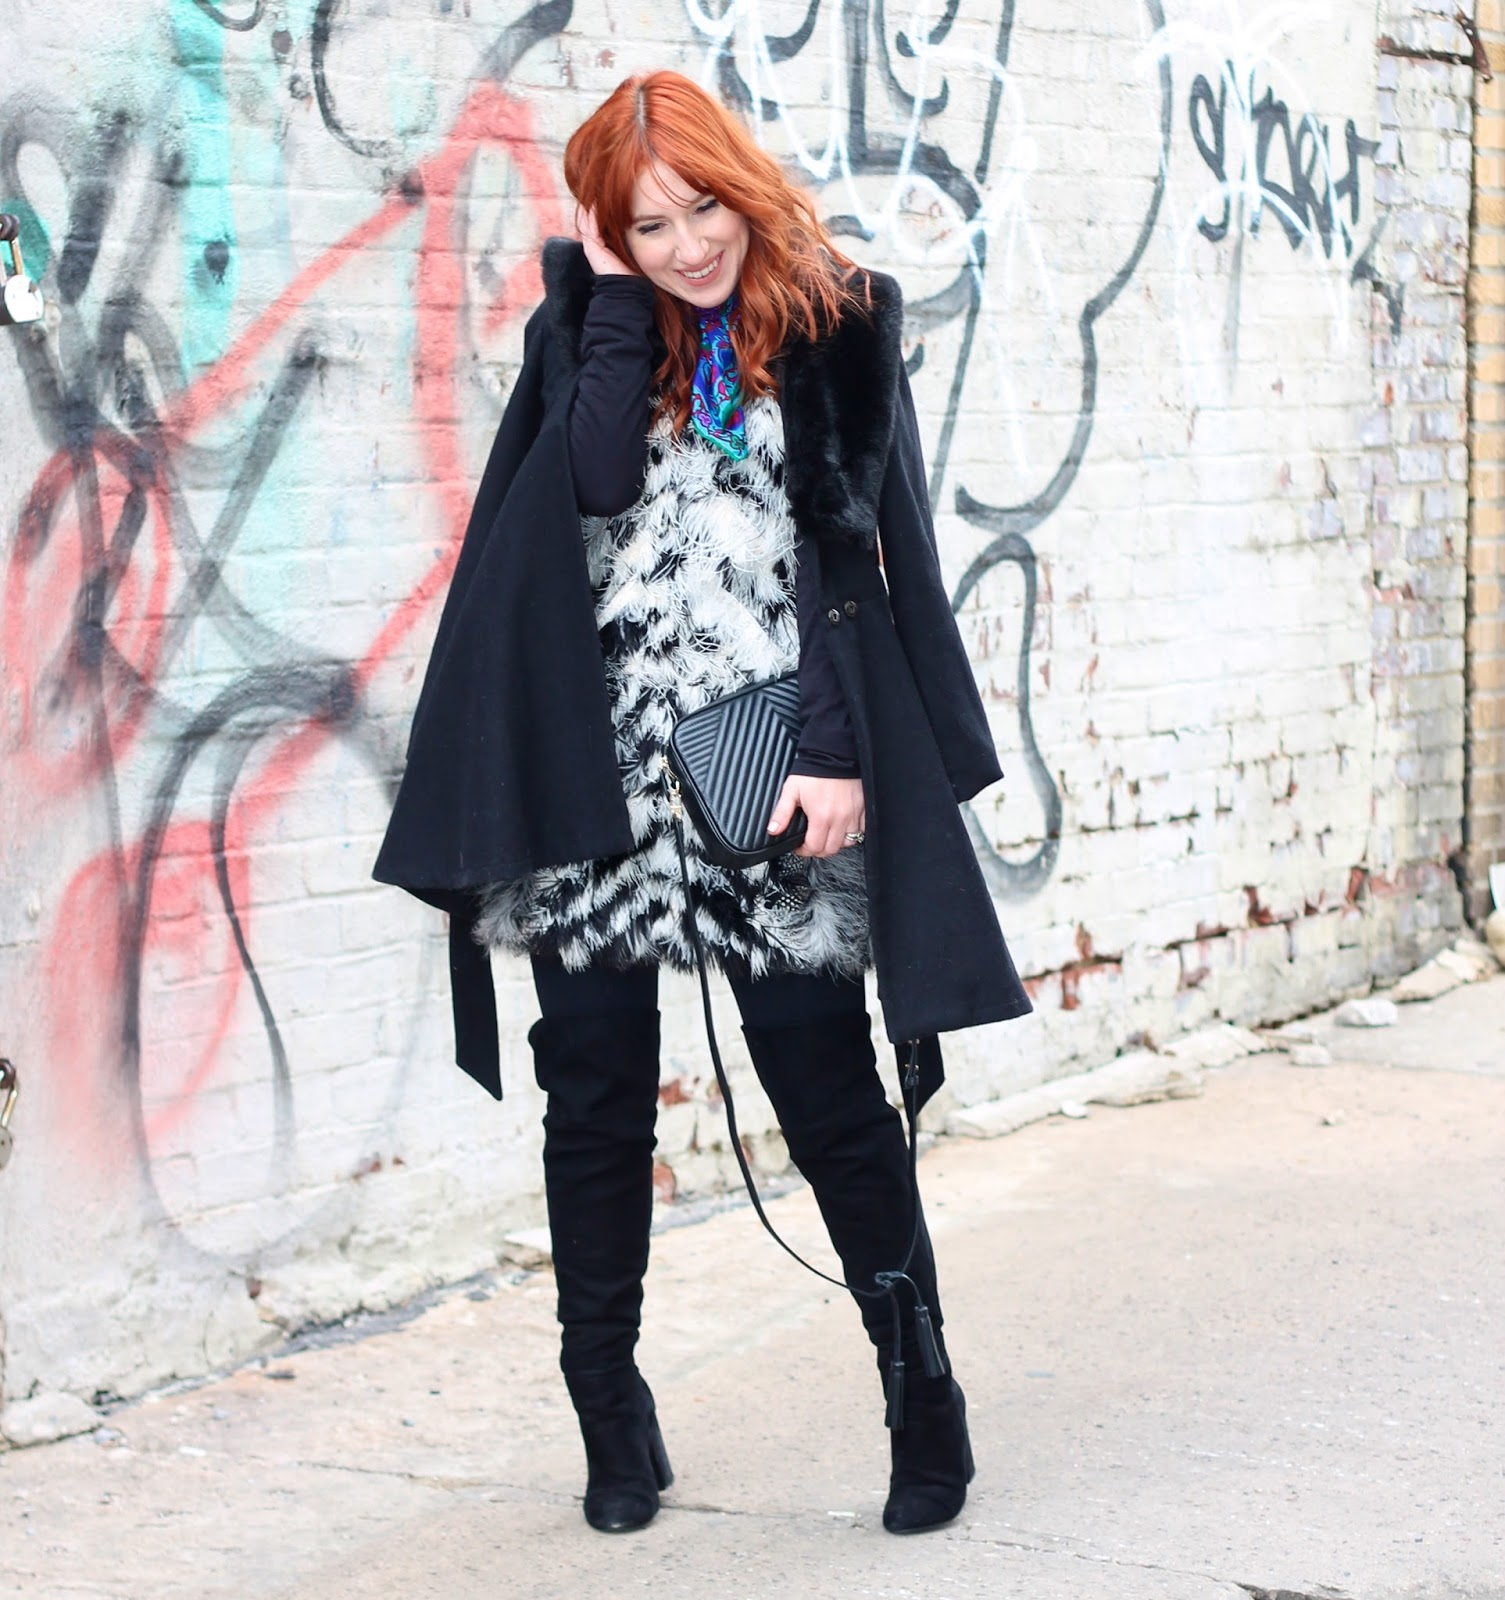 feathers, how to add texture to your outfit, feather outfits, fashion week style, what to wear to fashion week in the winter, winter fashion week style, fashion week, winter fashion week